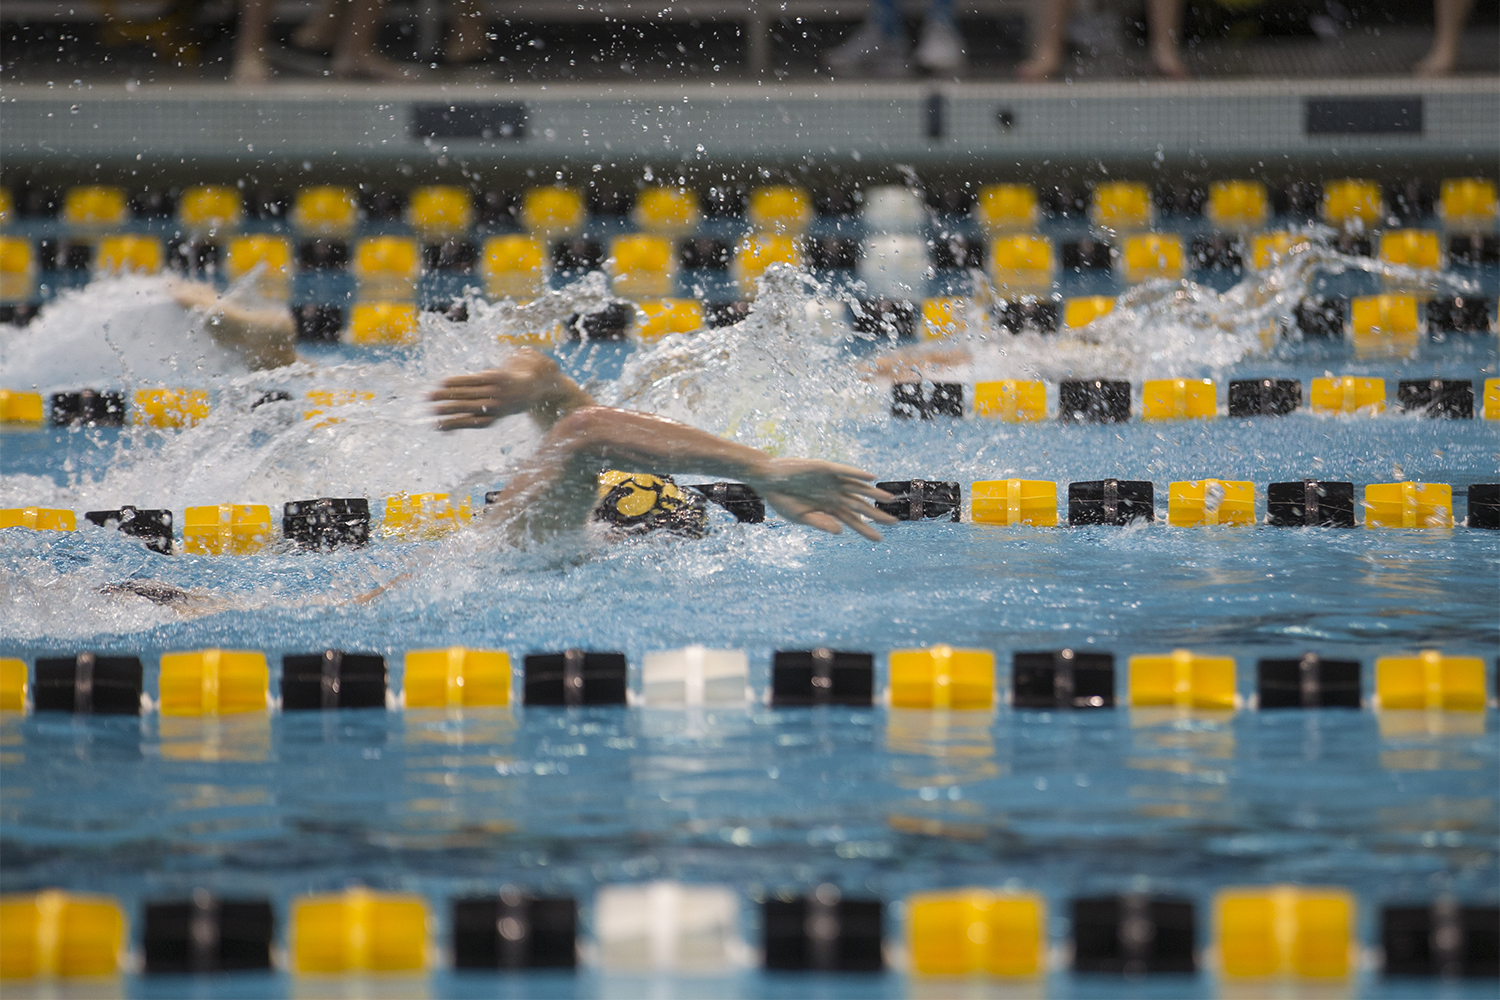 Swimmers+compete+in+a+medley+relay+during+the+Iowa+Swimming+and+Diving+Intrasquad+Meet+at+the+Campus+Recreation+and+Wellness+Center+on+Saturday%2C+September+29%2C+2018.